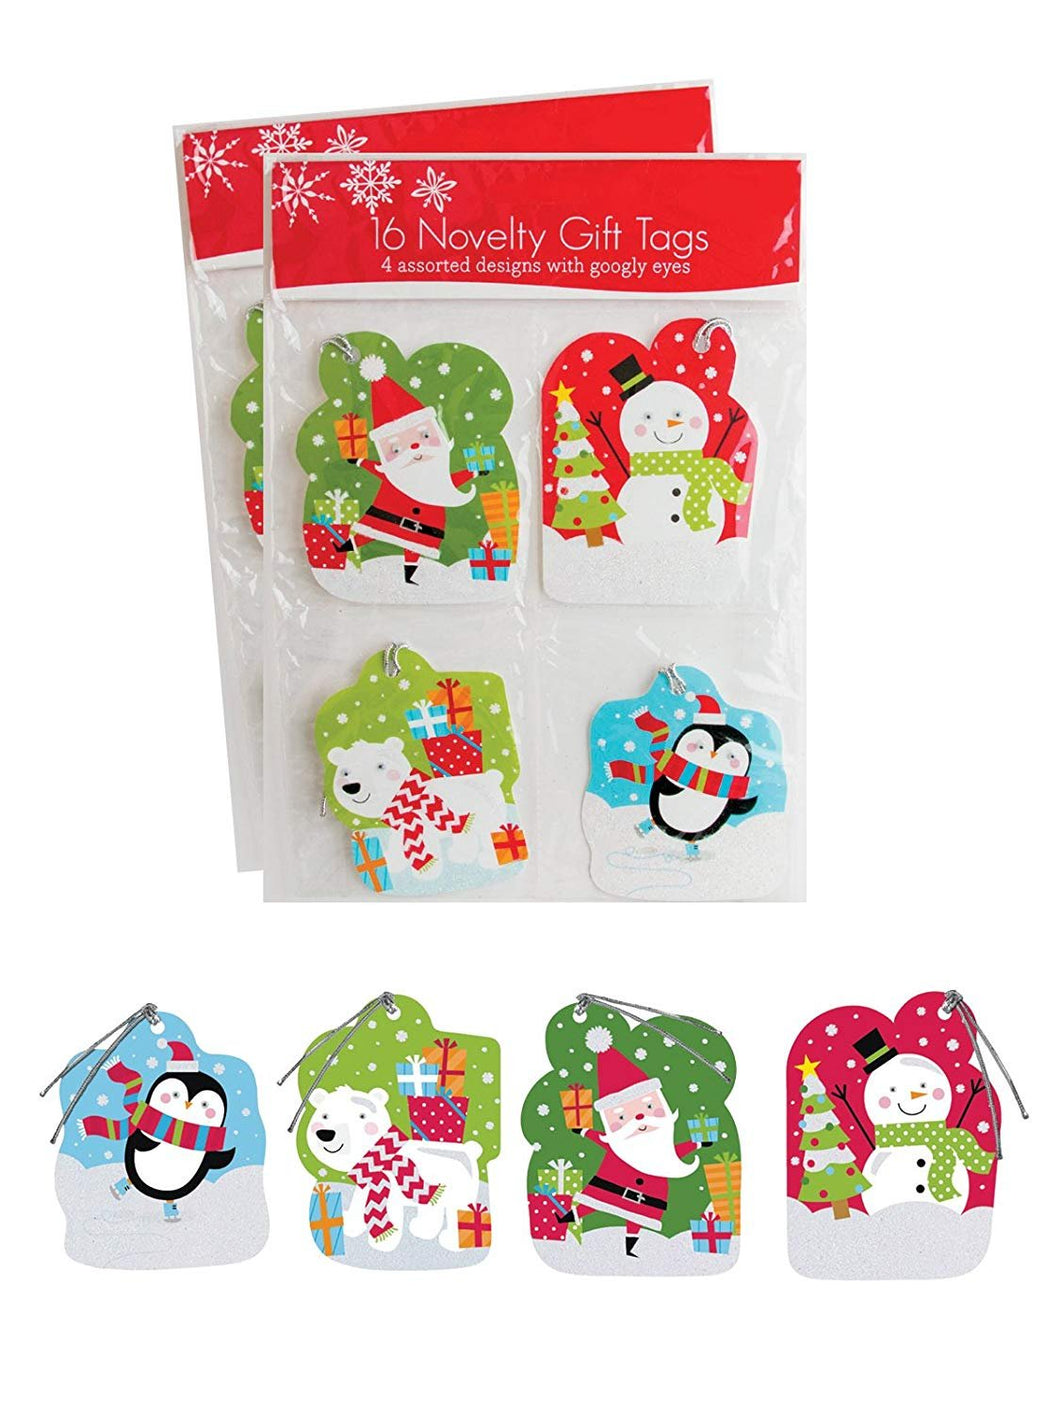 Pack of 32 Christmas Novelty Gift Tags w/Googly Eyes 4 Different Designs - Juvenile